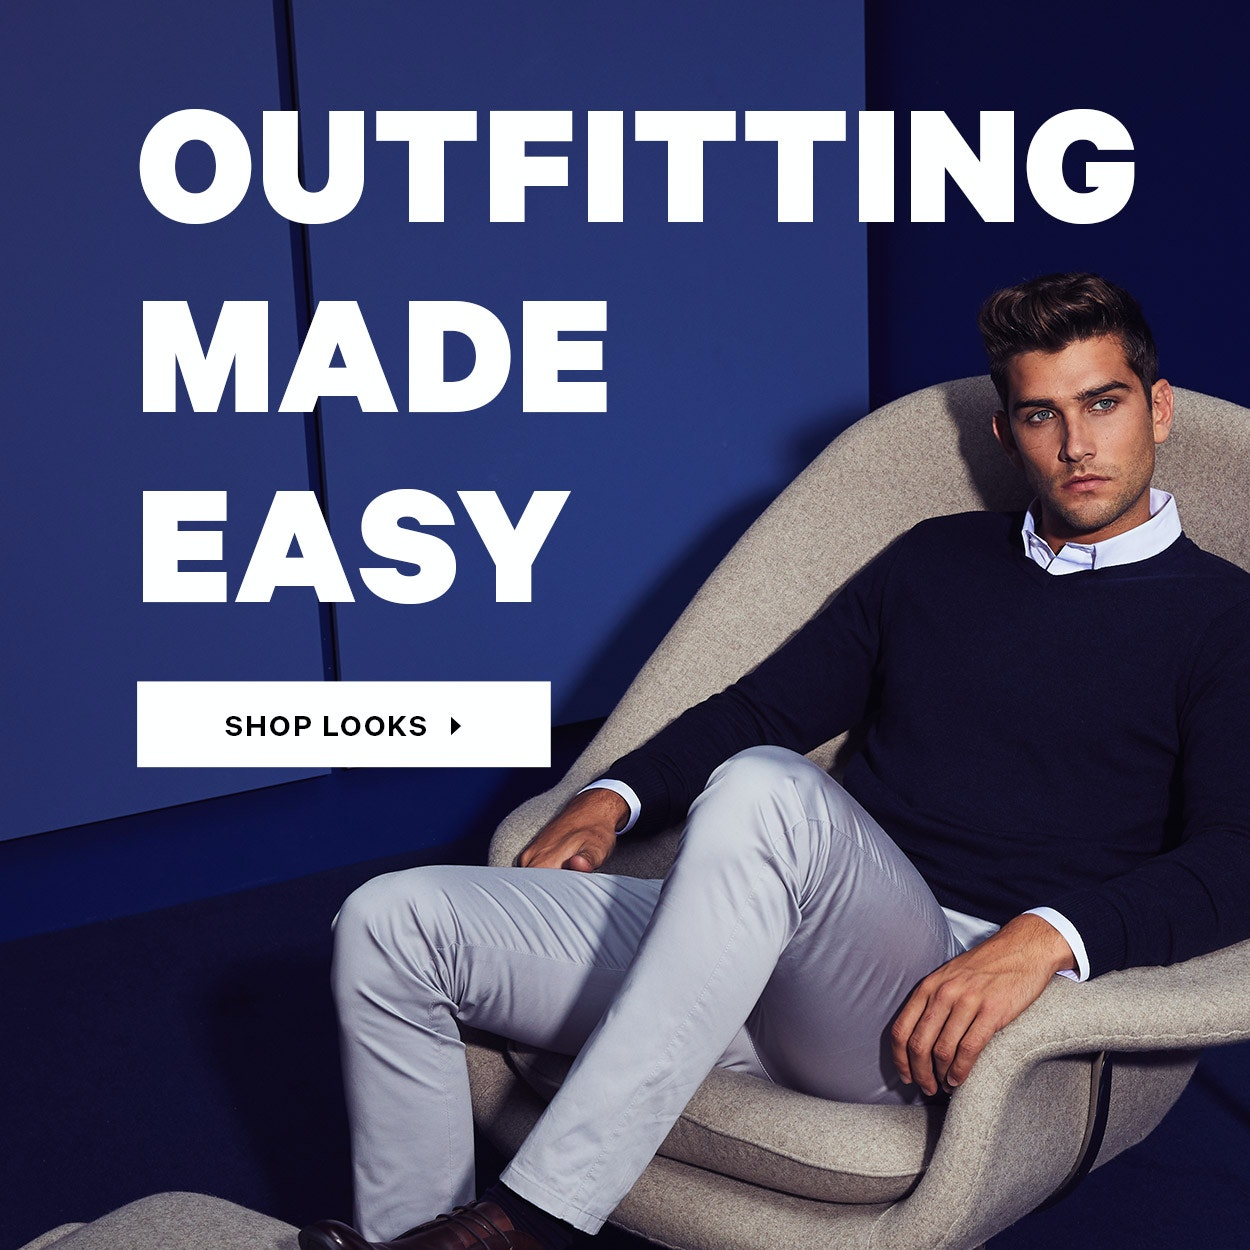 Outfitting Made Easy